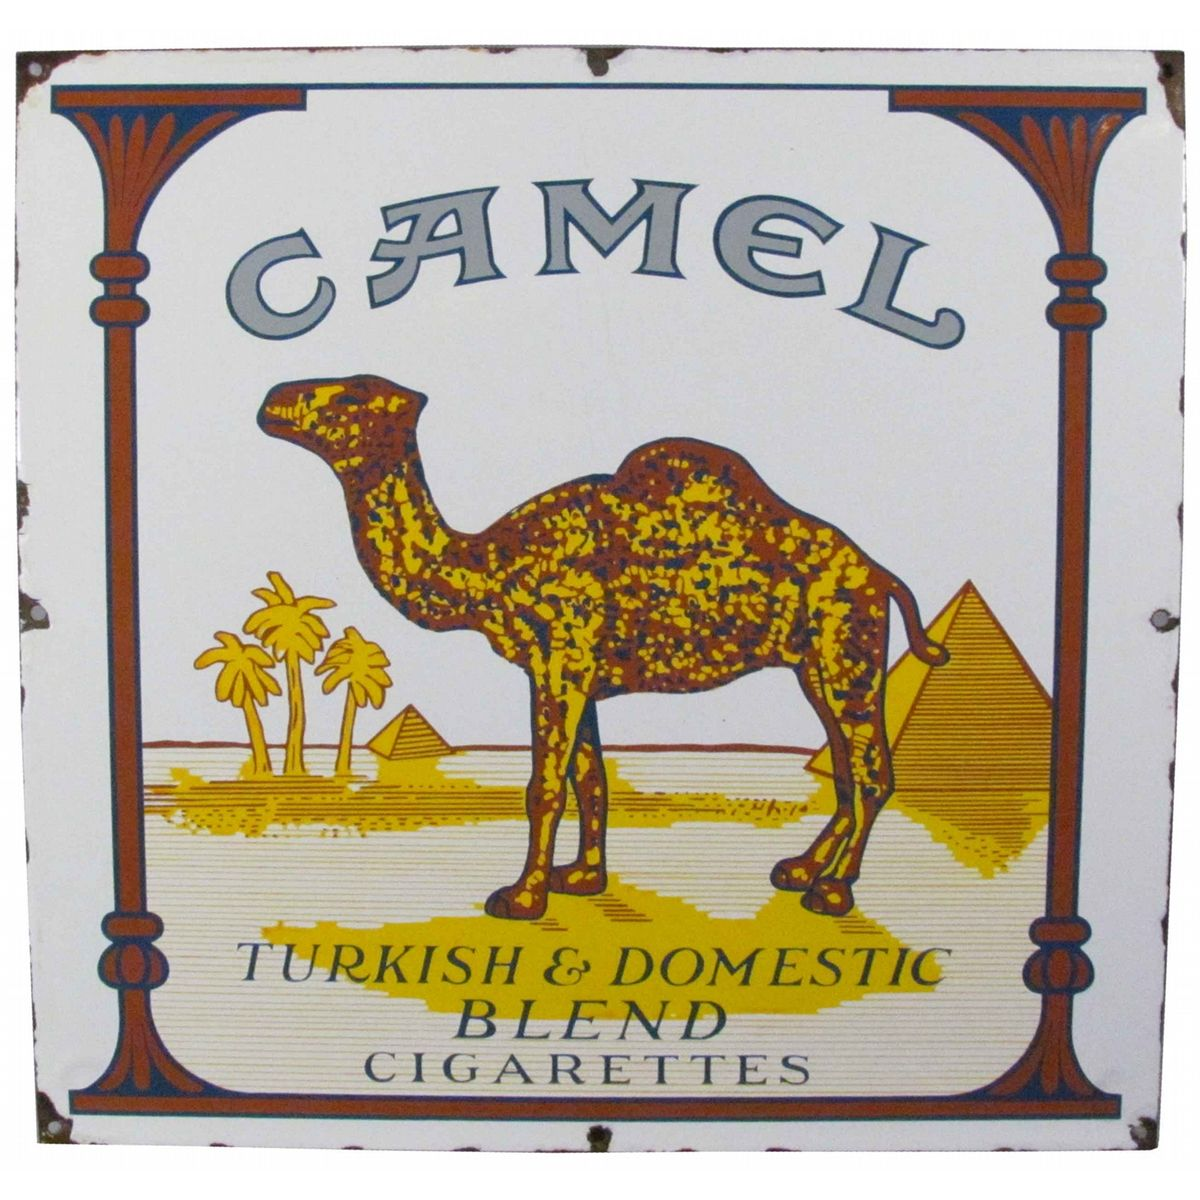 ALL CAMEL CIGARETTES